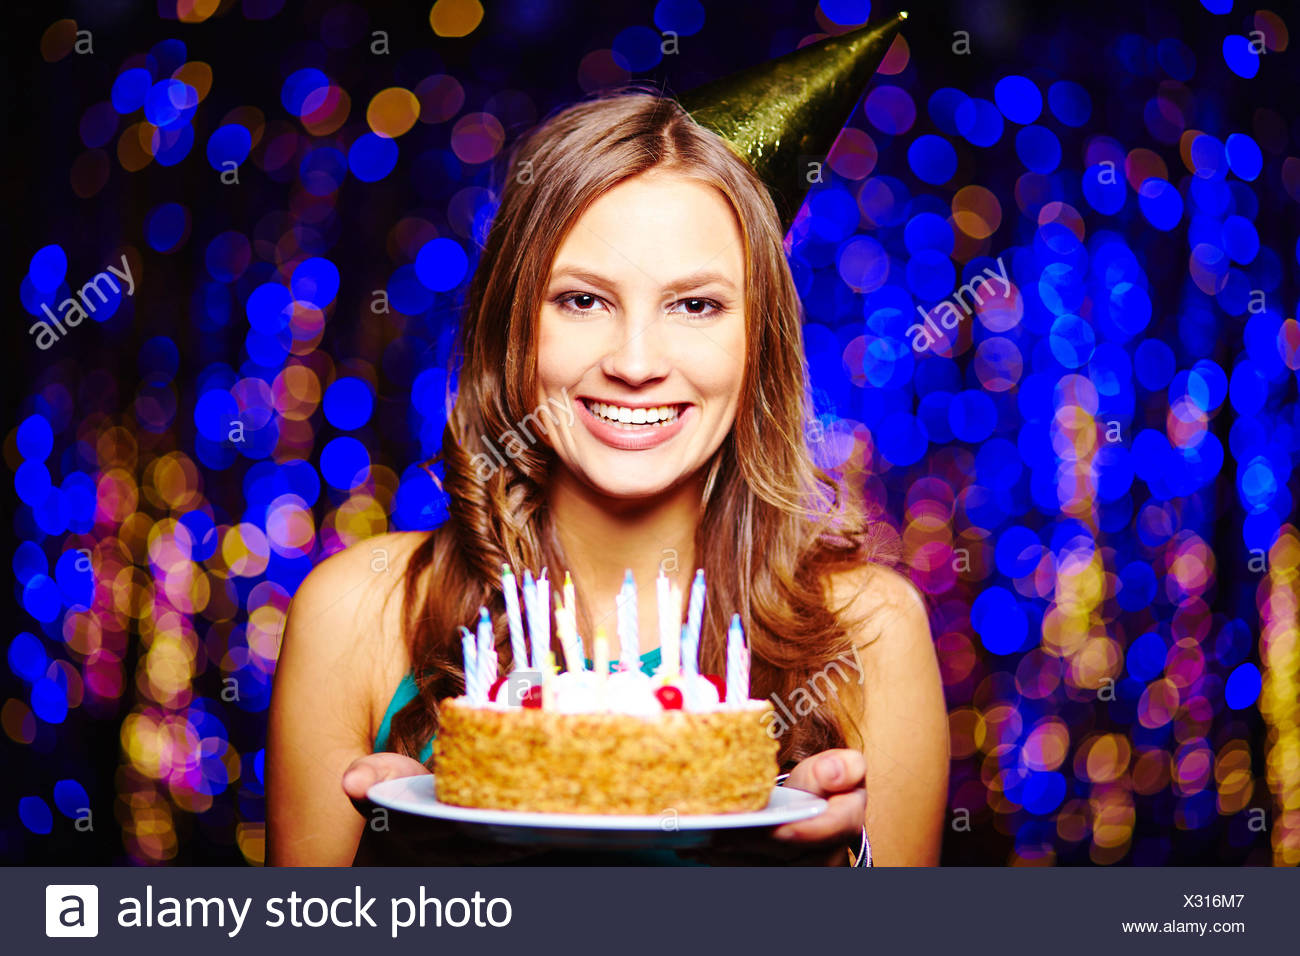 Miraculous Smiling Girl With Birthday Cake Looking At Camera On Sparkling Funny Birthday Cards Online Aboleapandamsfinfo